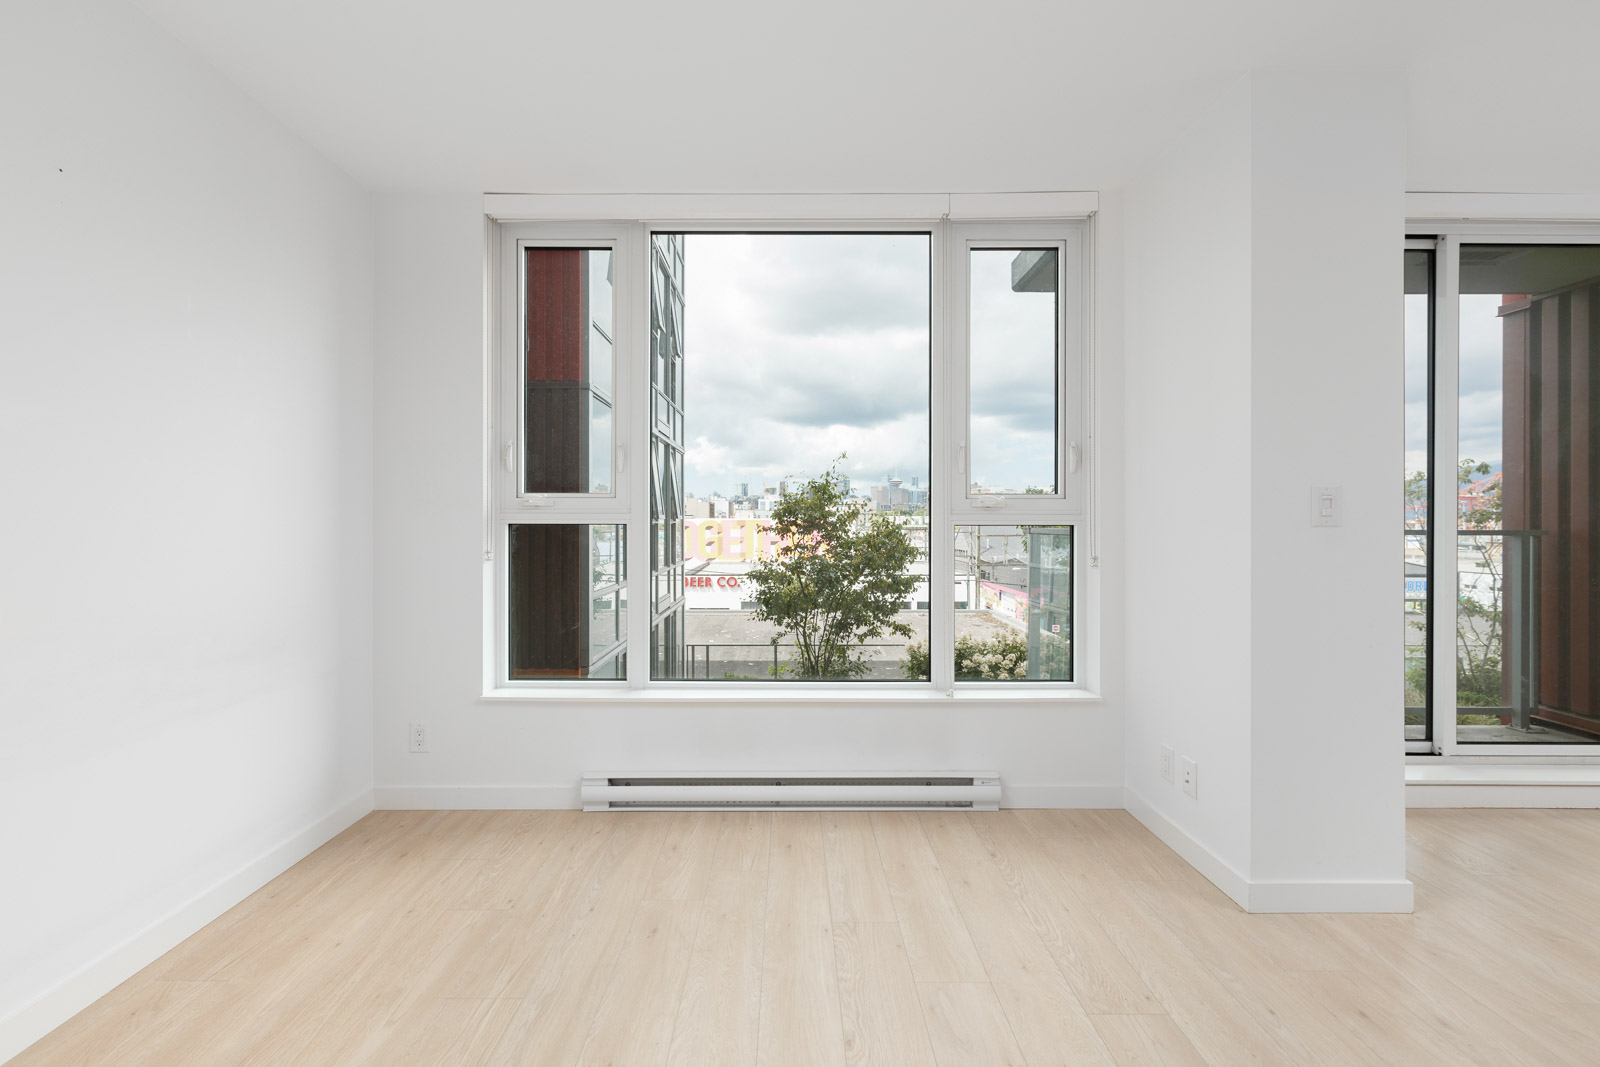 big bedroom with windows allowing sunlight